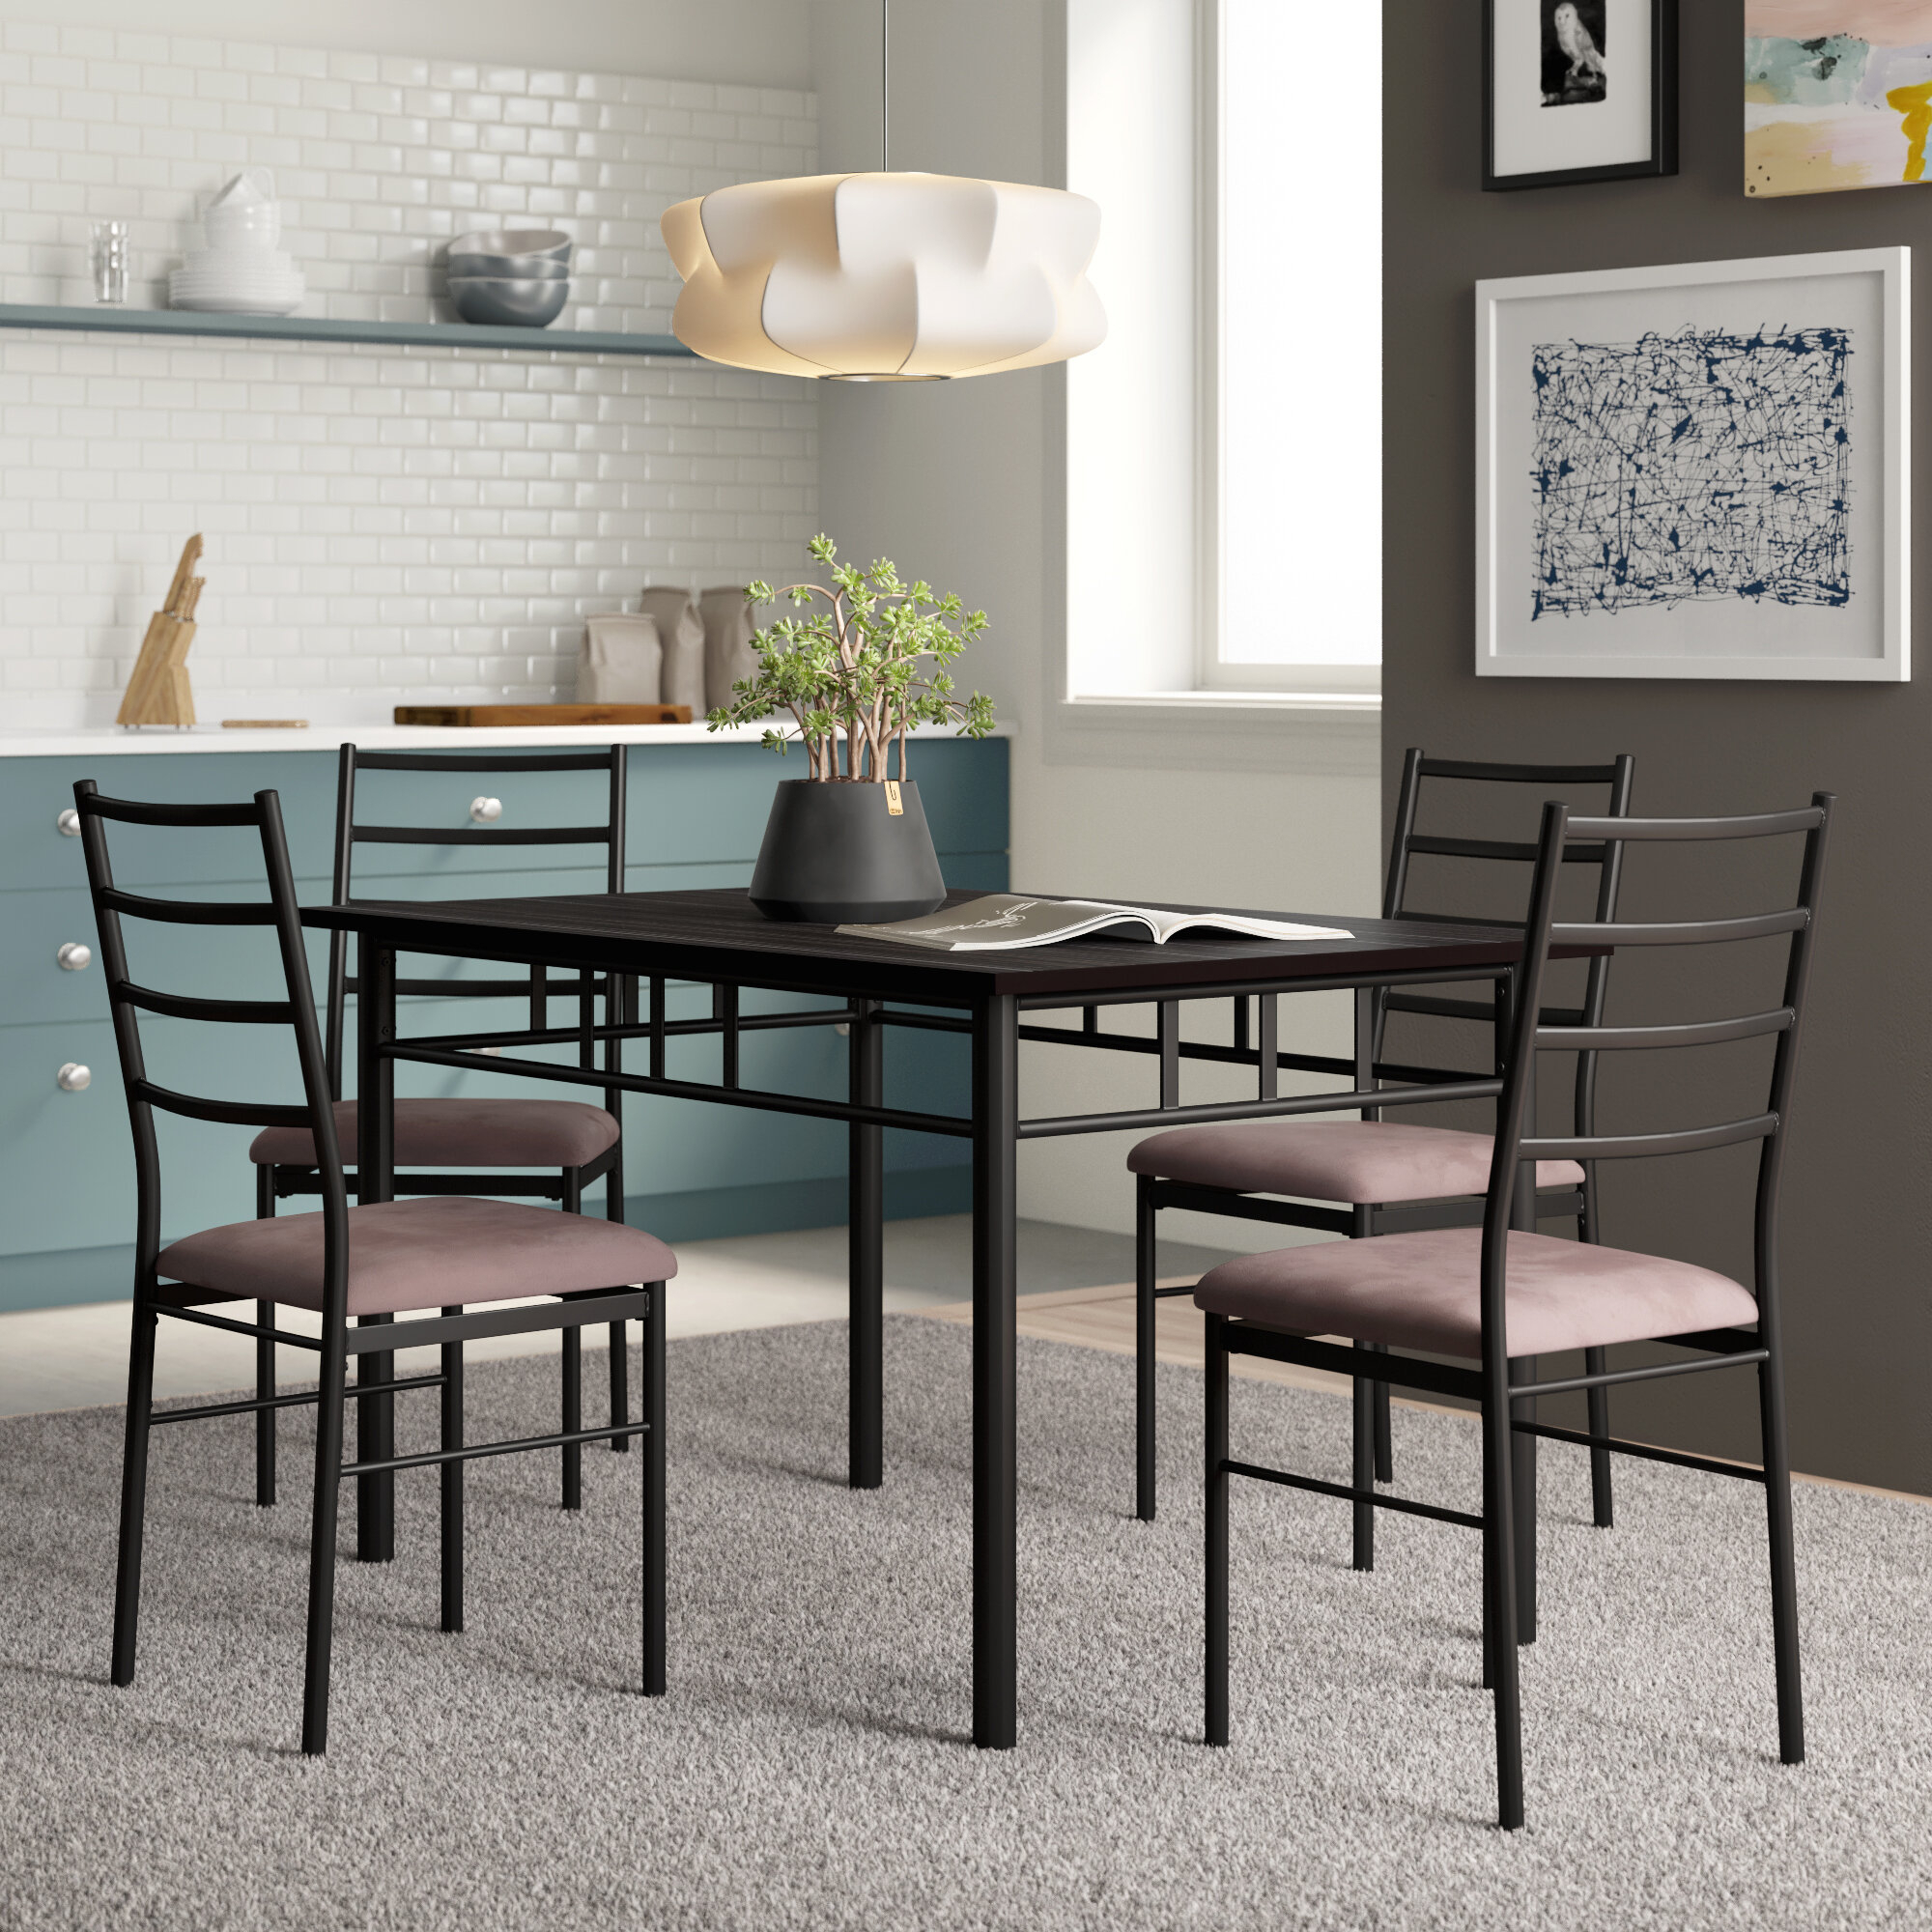 Casiano 5 Piece Dining Sets For Well Known Zipcode Design Jarrod 5 Piece Dining Set & Reviews (View 8 of 20)